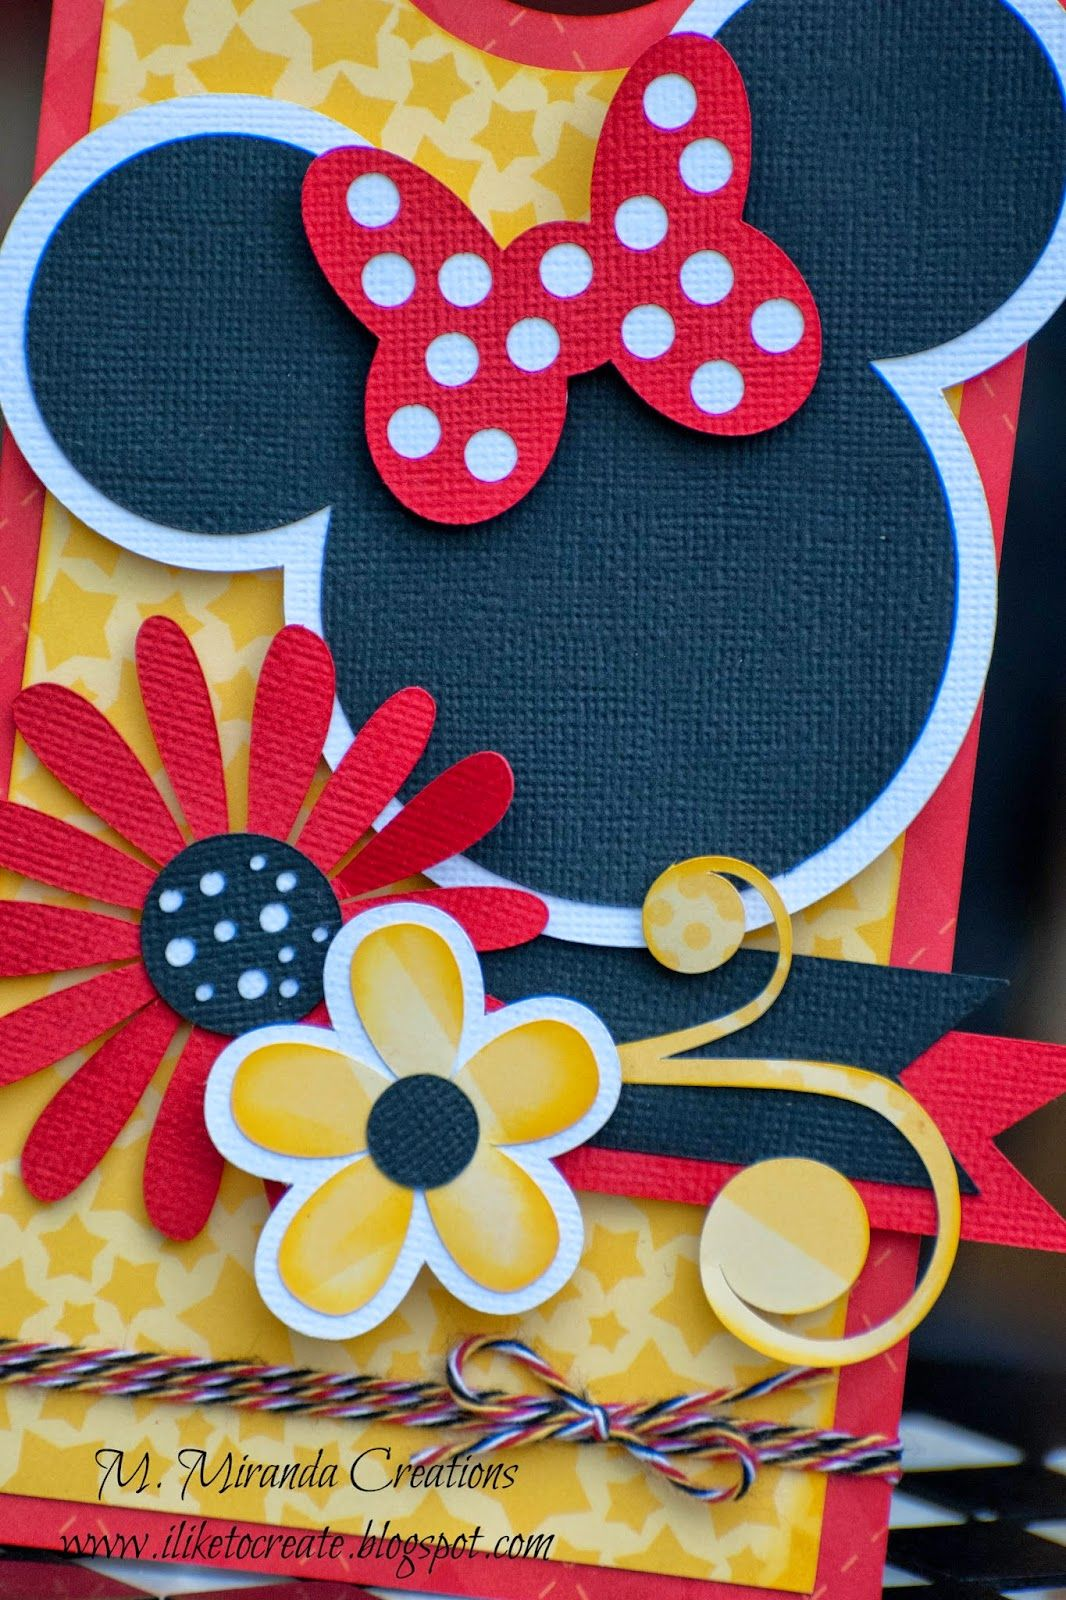 Handmade Project File Decoration Ideas Decoration For Home